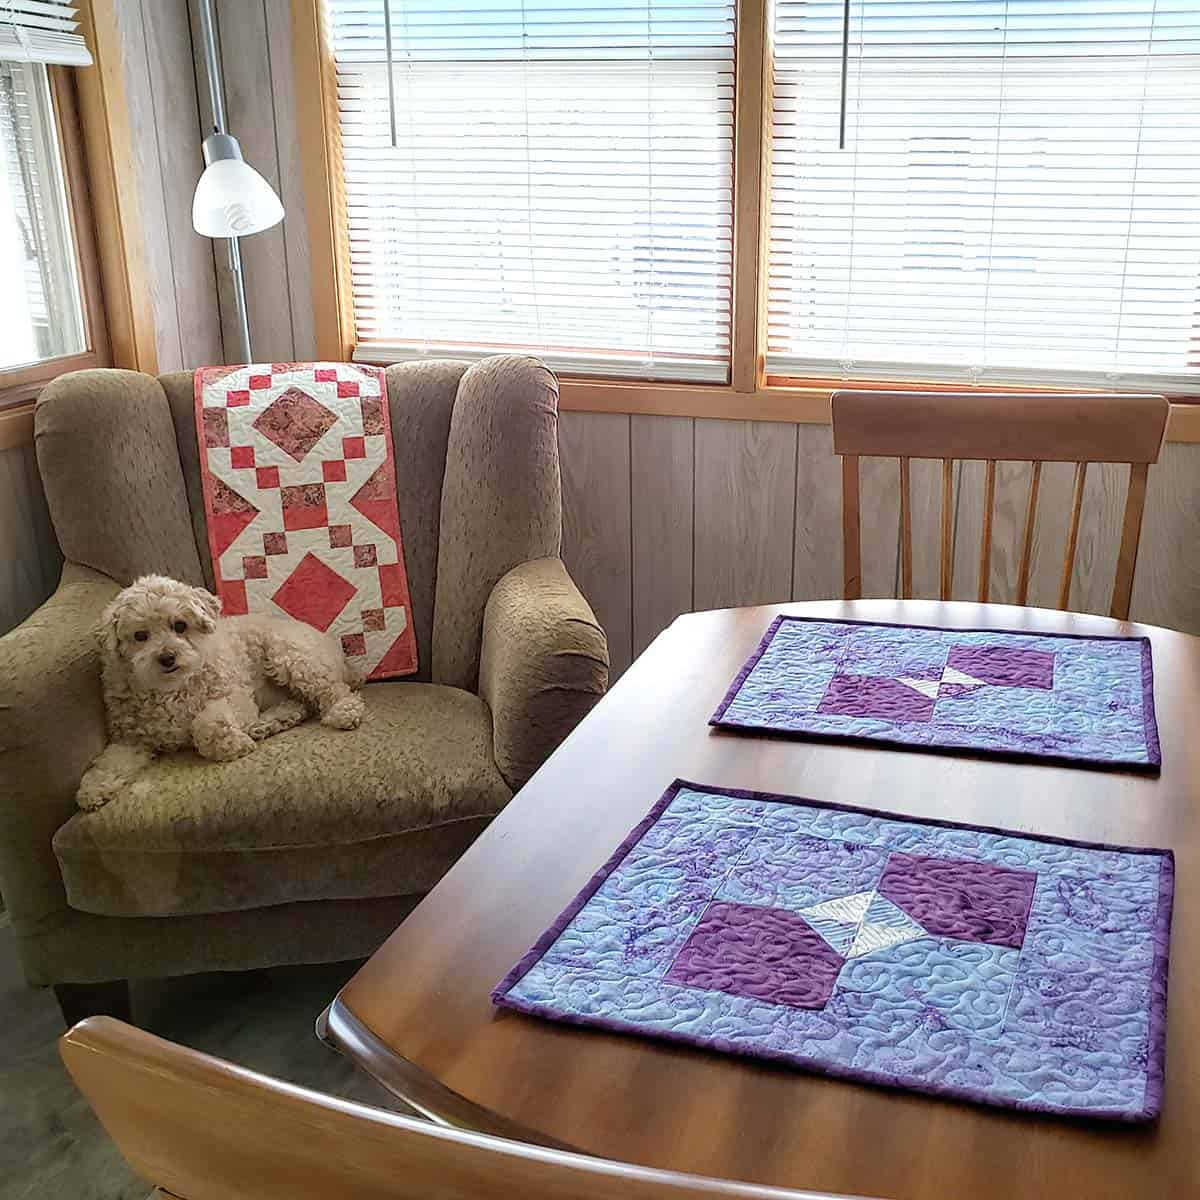 Bow tie quilted placemats on table in kitchen